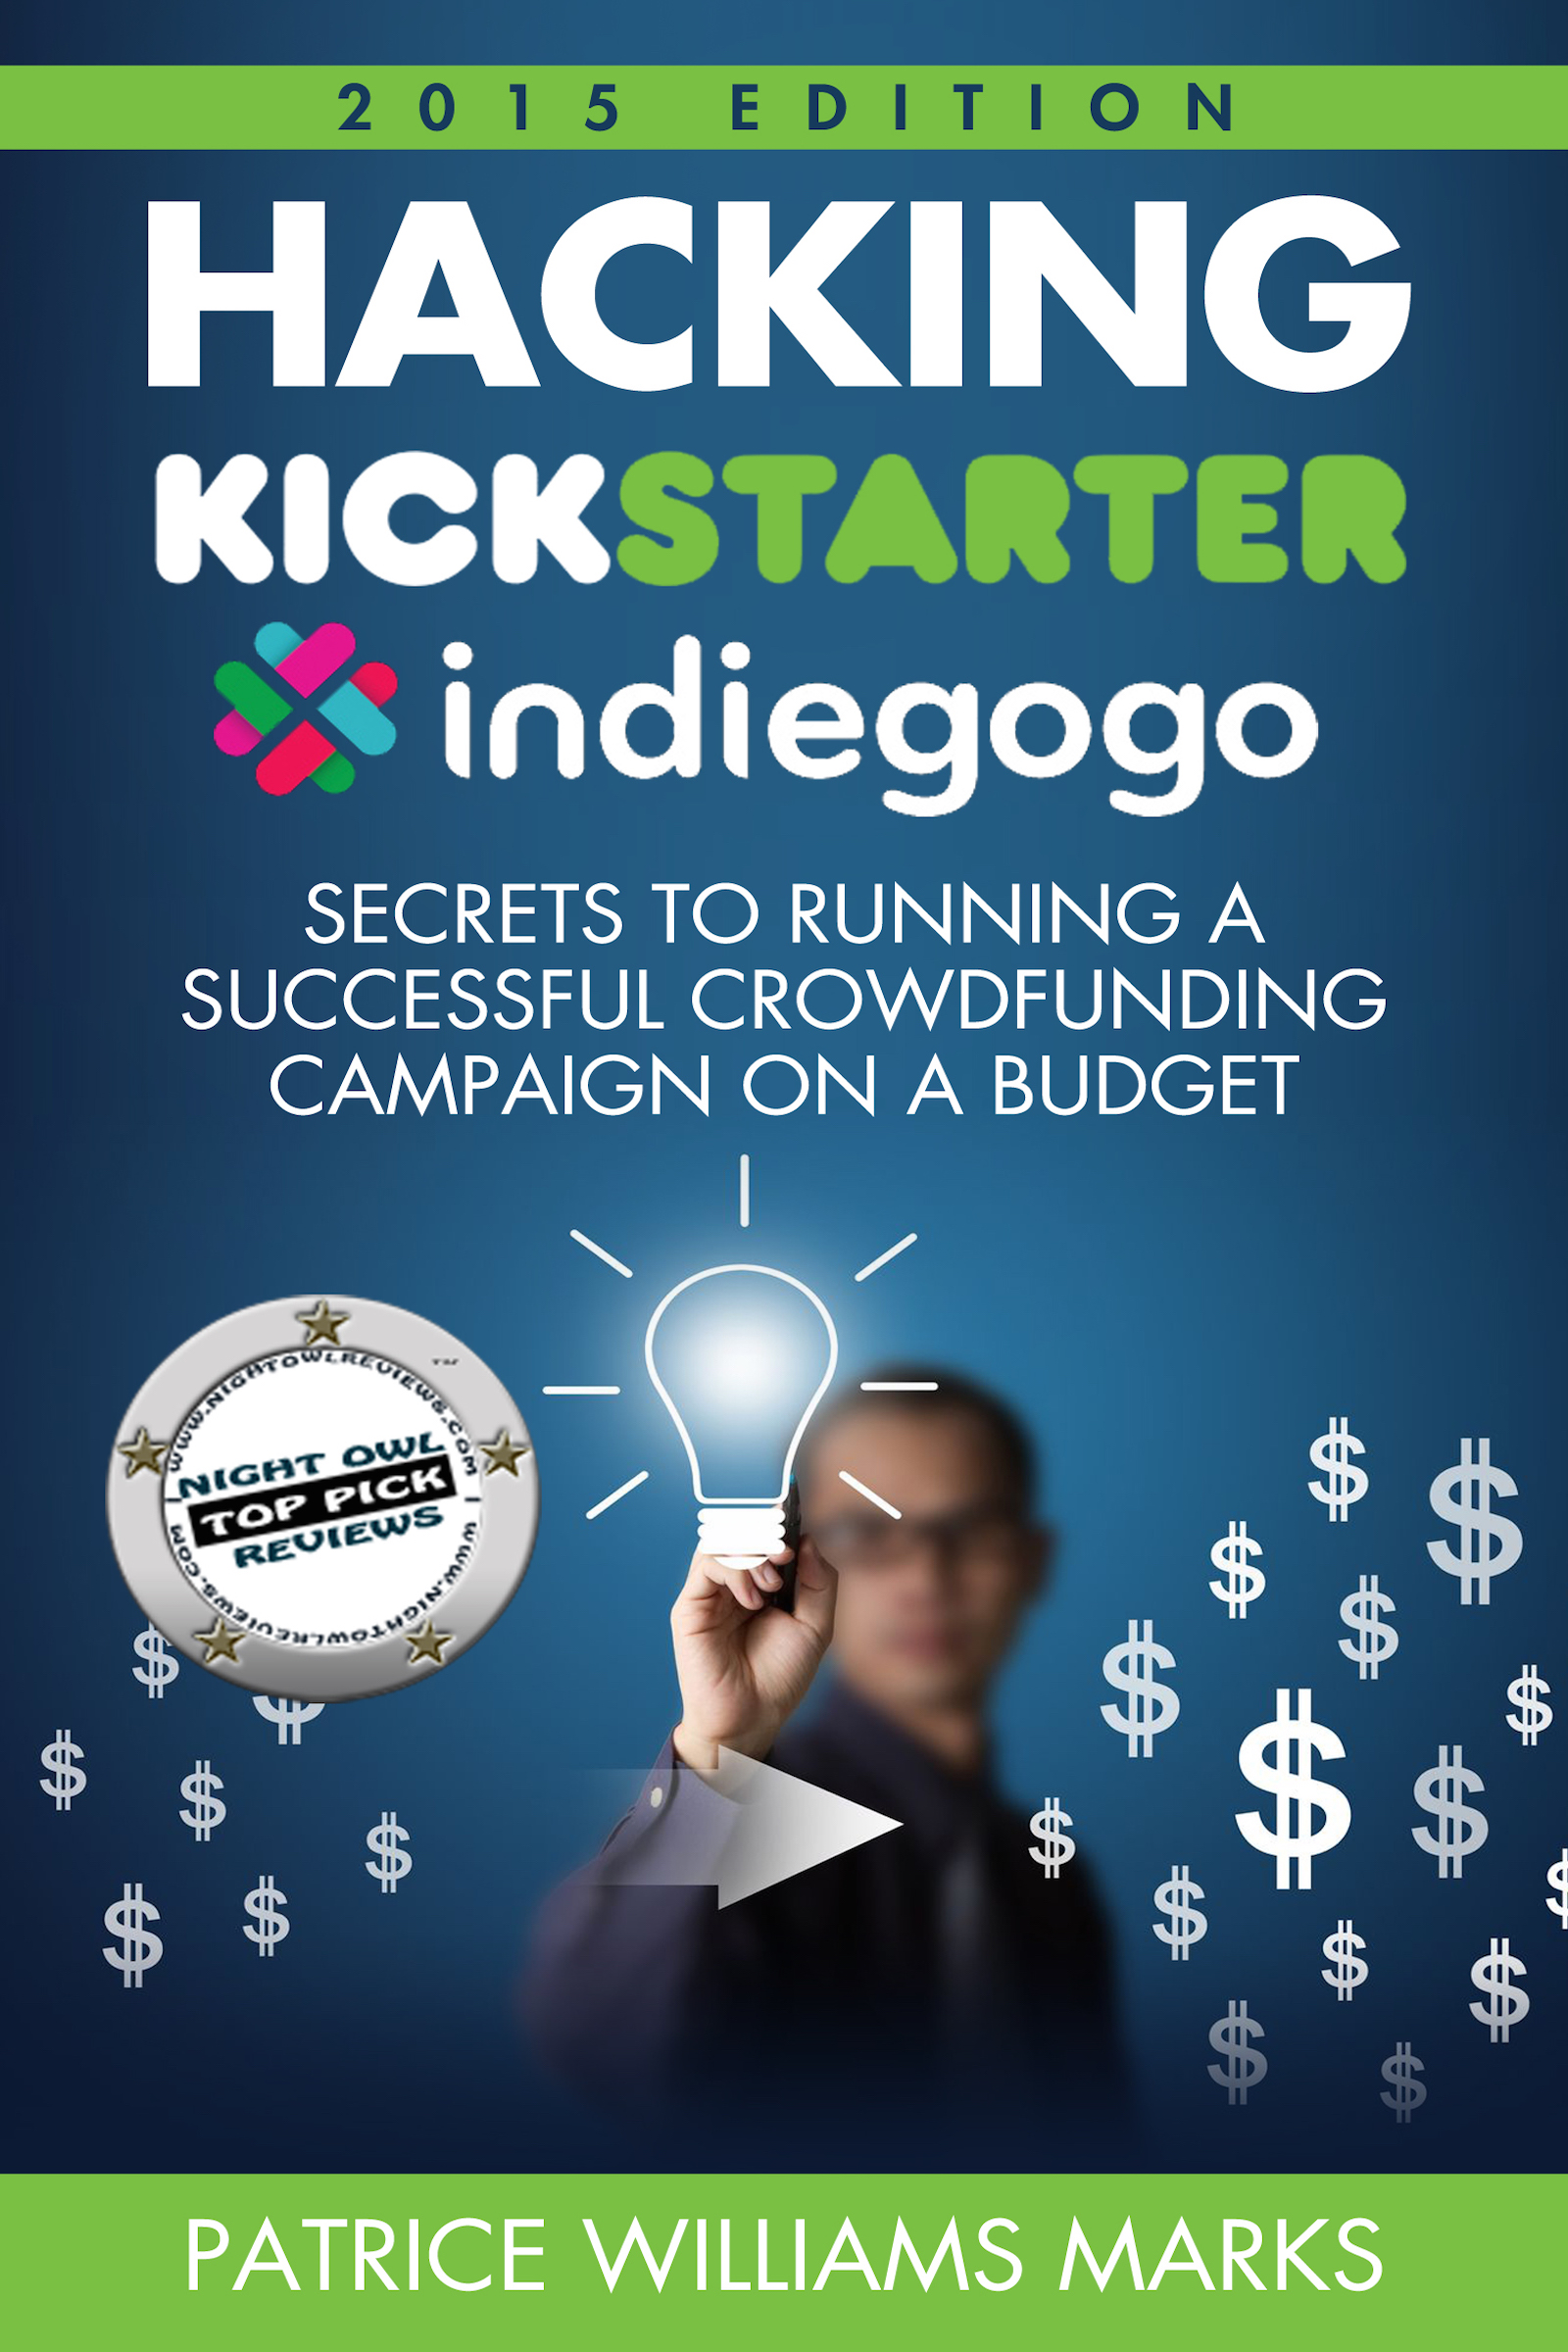 Hacking Kickstarter, Indiegogo: How to Raise Big Bucks in 30 Days (Secrets to Running a Successful Crowd Funding Campaign on a Budget)